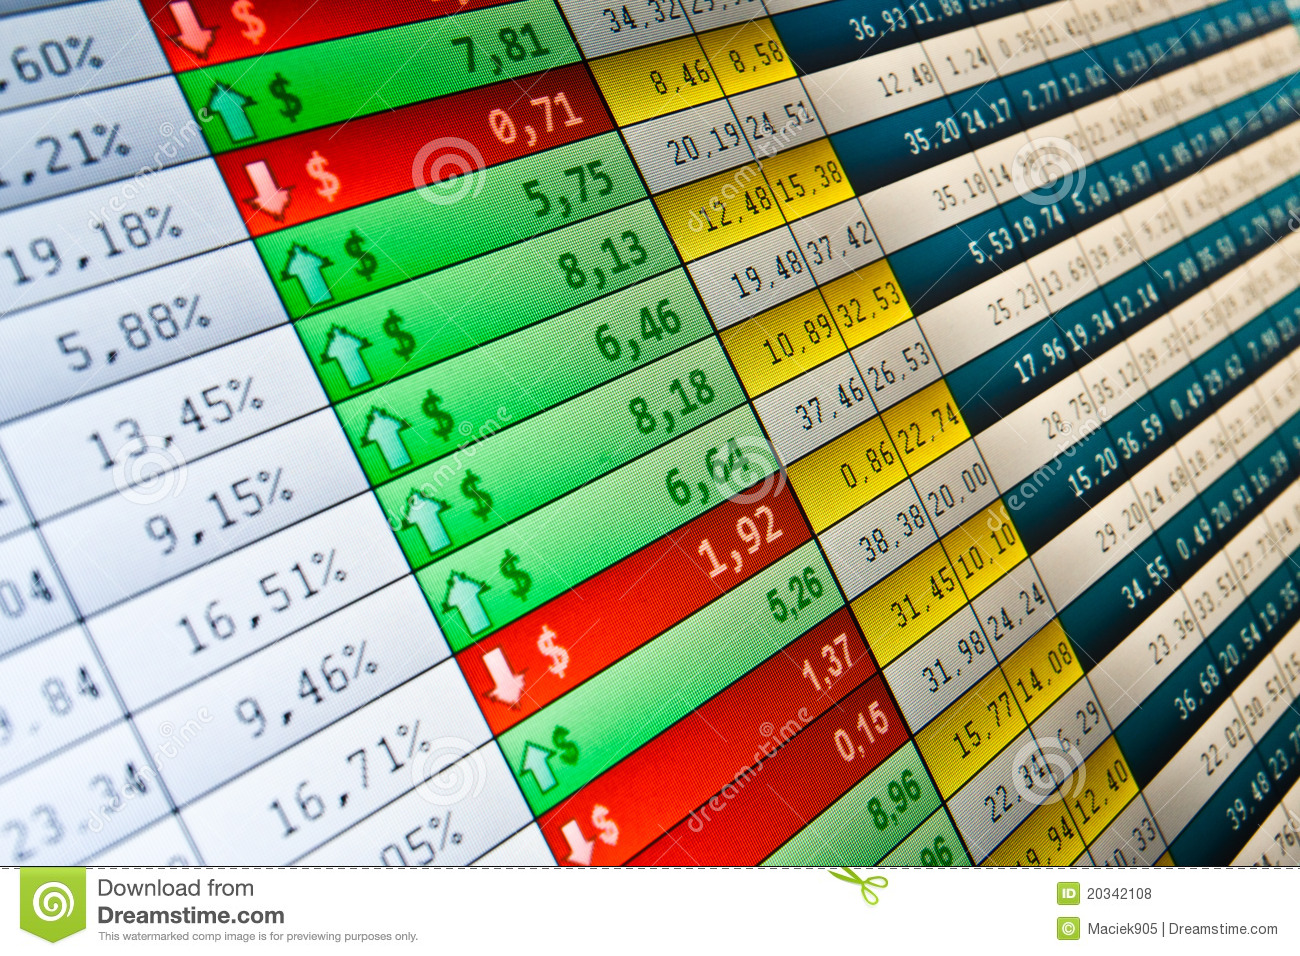 Real Time Stock Quote Stock Quotes At Real Time At The Stock Exchange Stock Photo